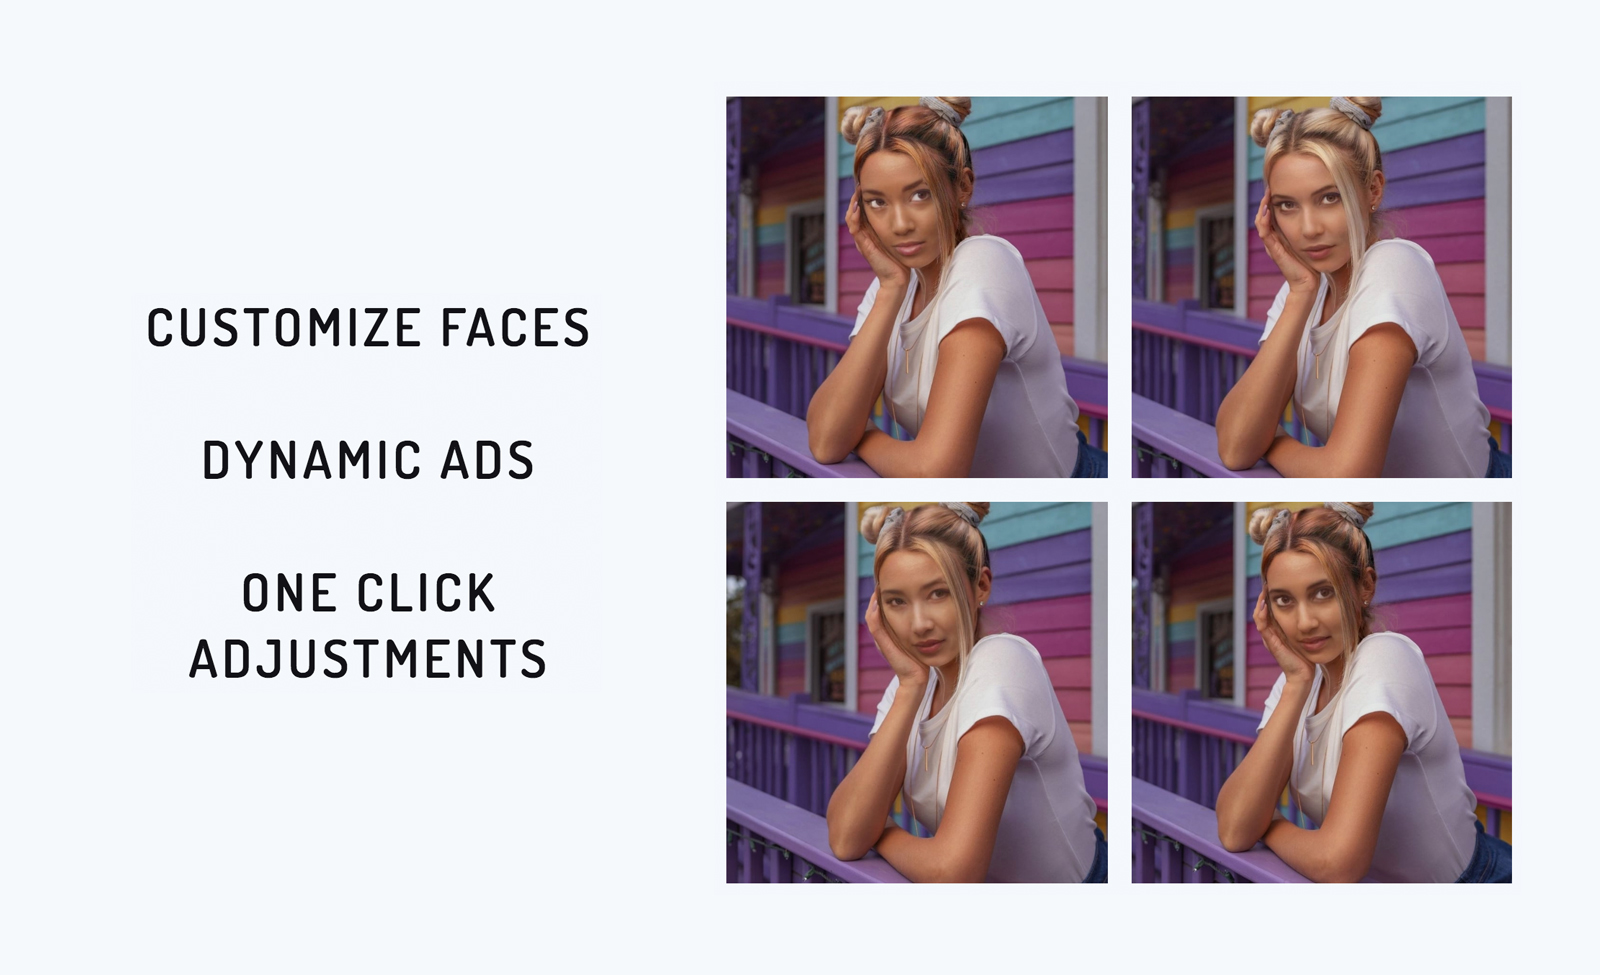 Customize faces. Dynamic ads. Once click adjustments.